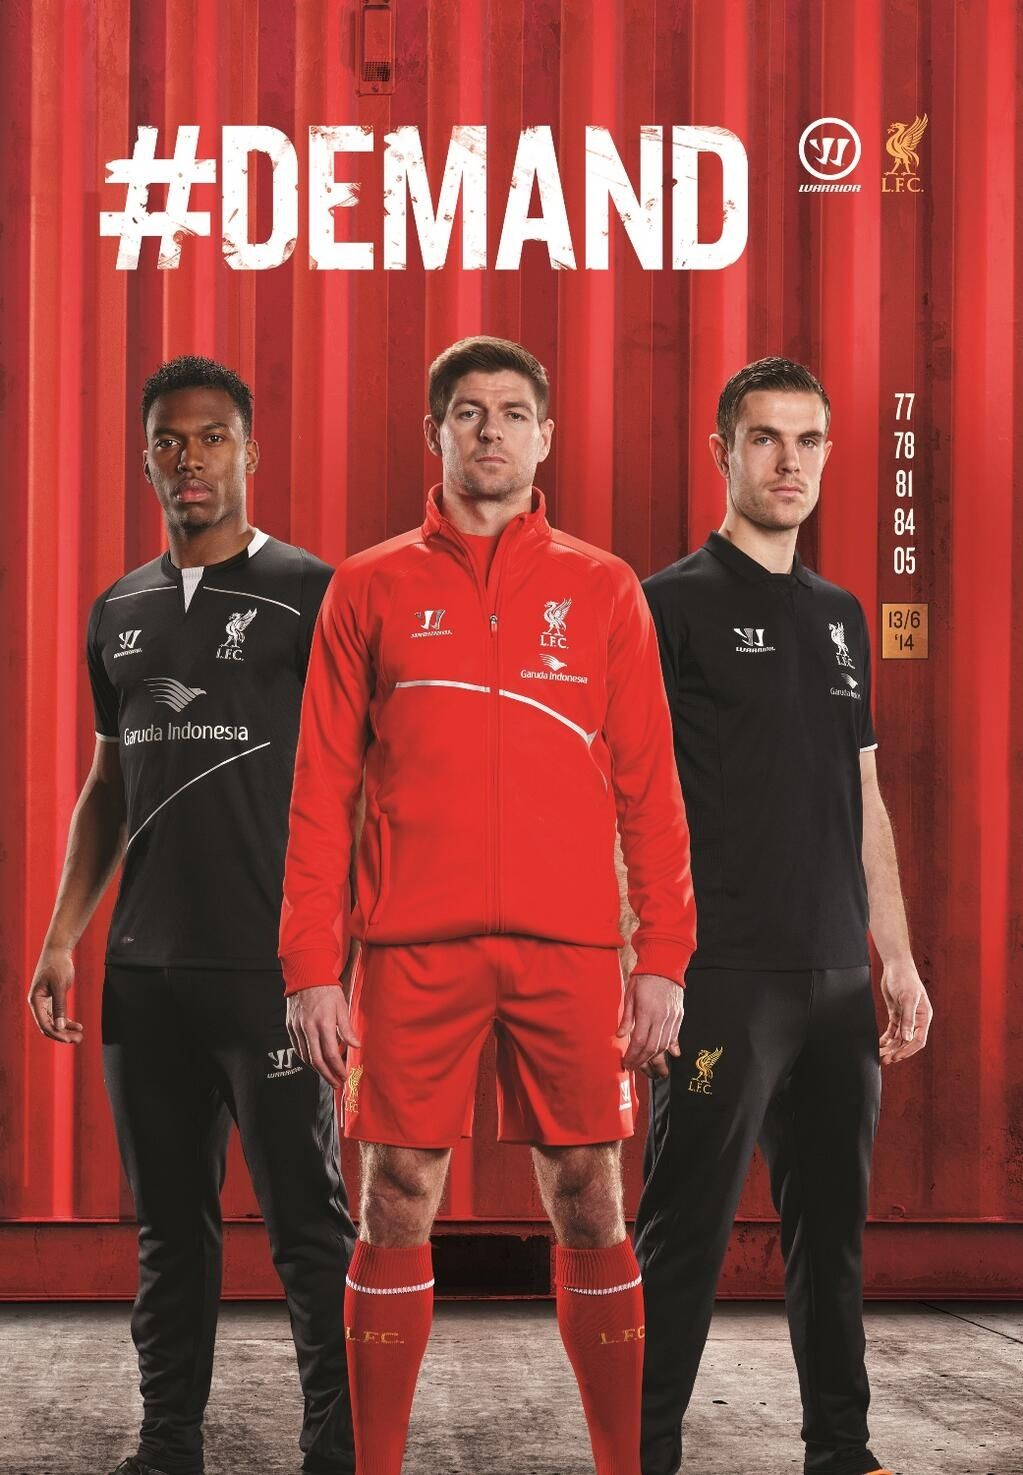 Nice... Liverpool kit, Liverpool football club